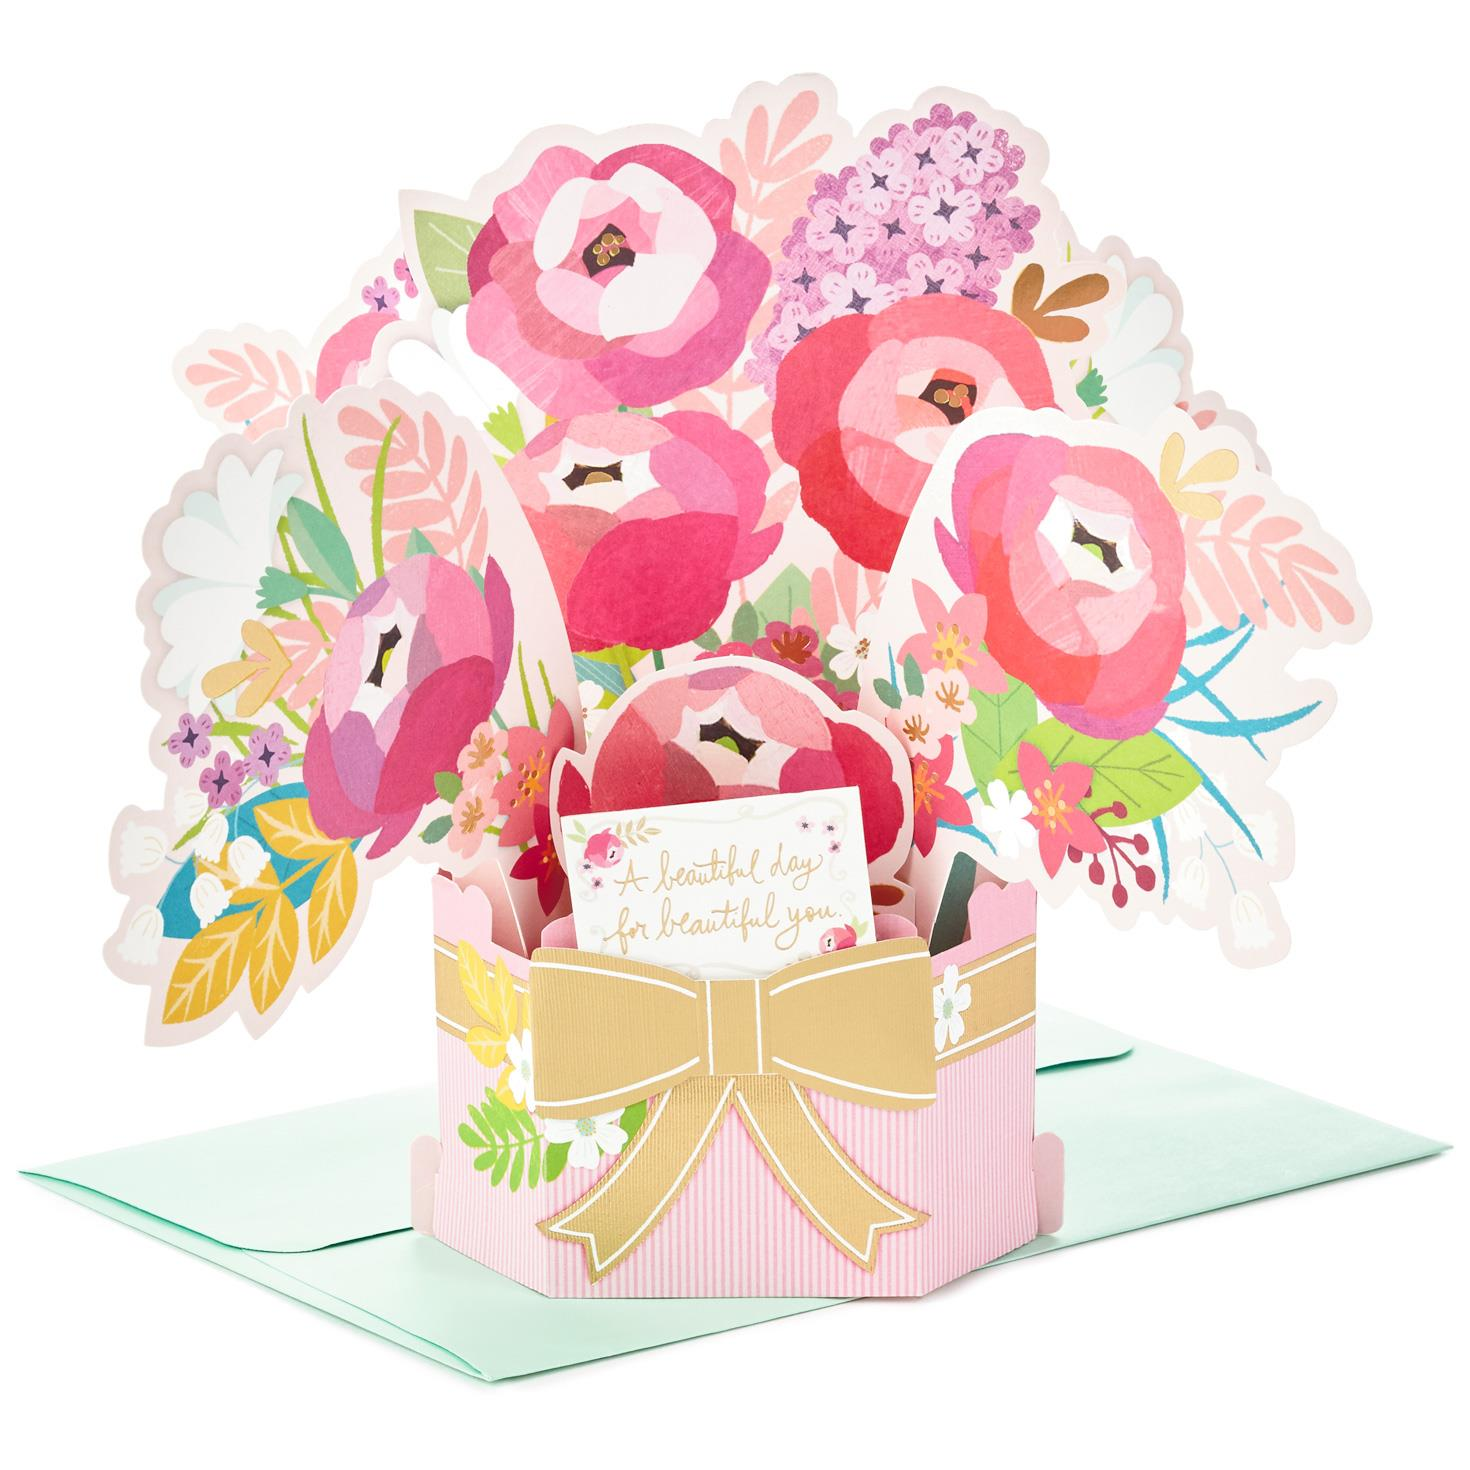 Blossoming flower bouquet pop up birthday card greeting Hallmark flowers